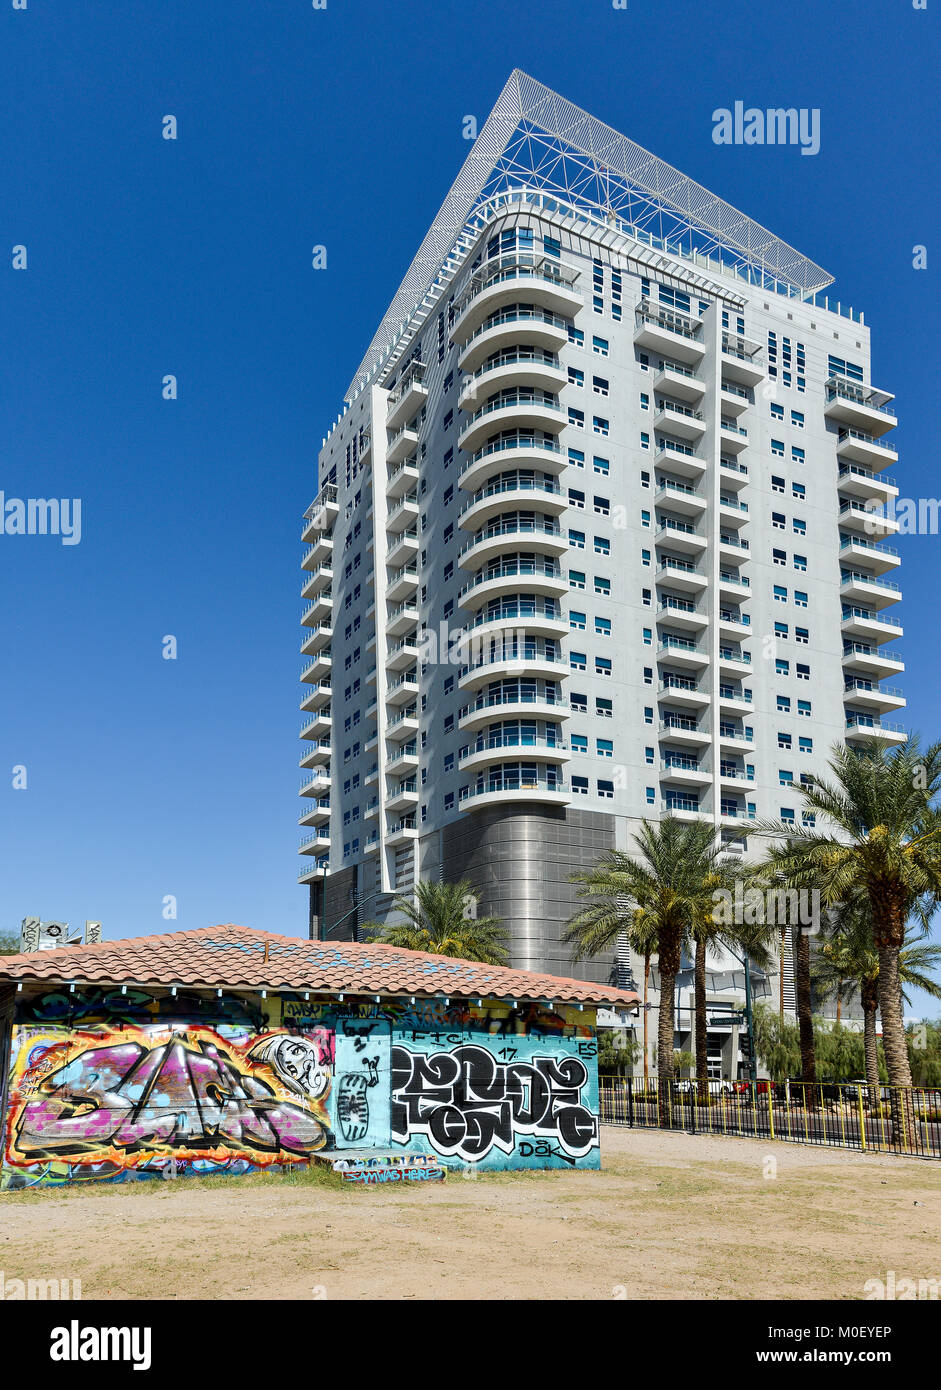 A condominium building exterior in downtown Las Vegas. - Stock Image